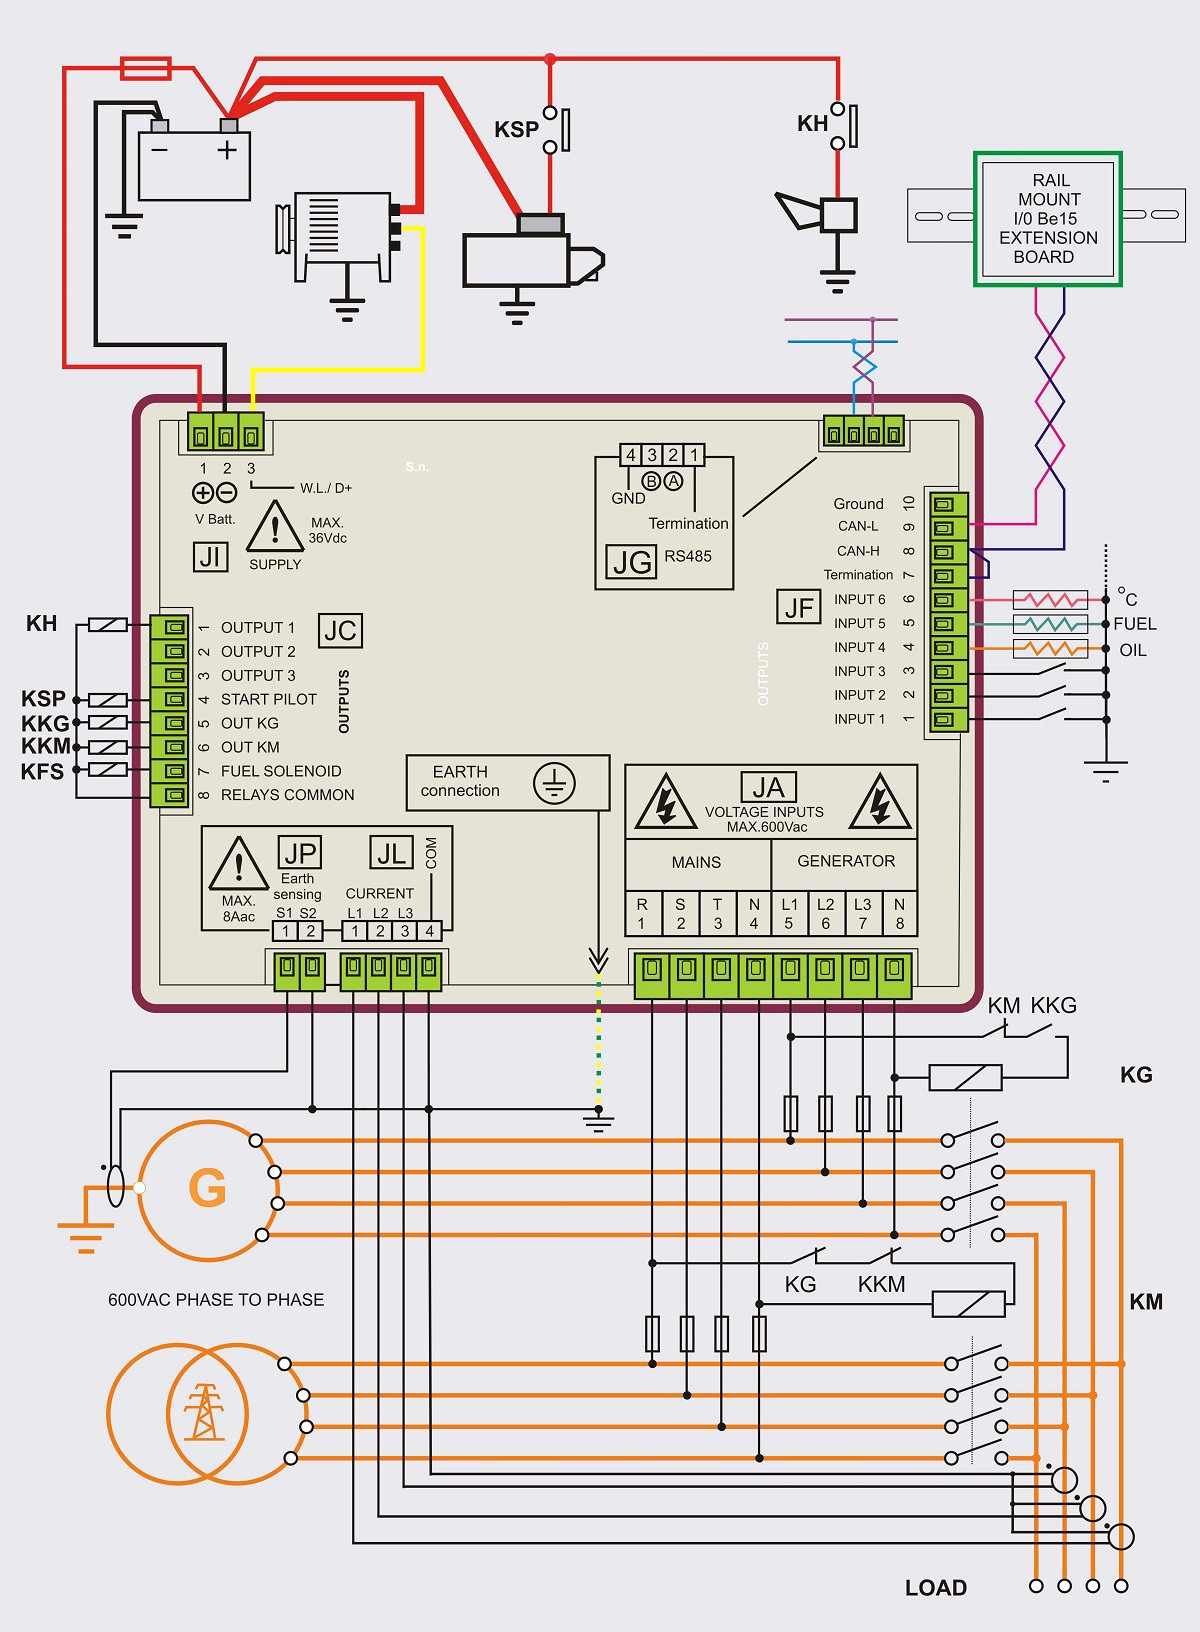 Generac manual transfer switch wiring diagram gallery wiring generac manual transfer switch wiring diagram download generac 100 amp automatic transfer switch wiring diagram swarovskicordoba